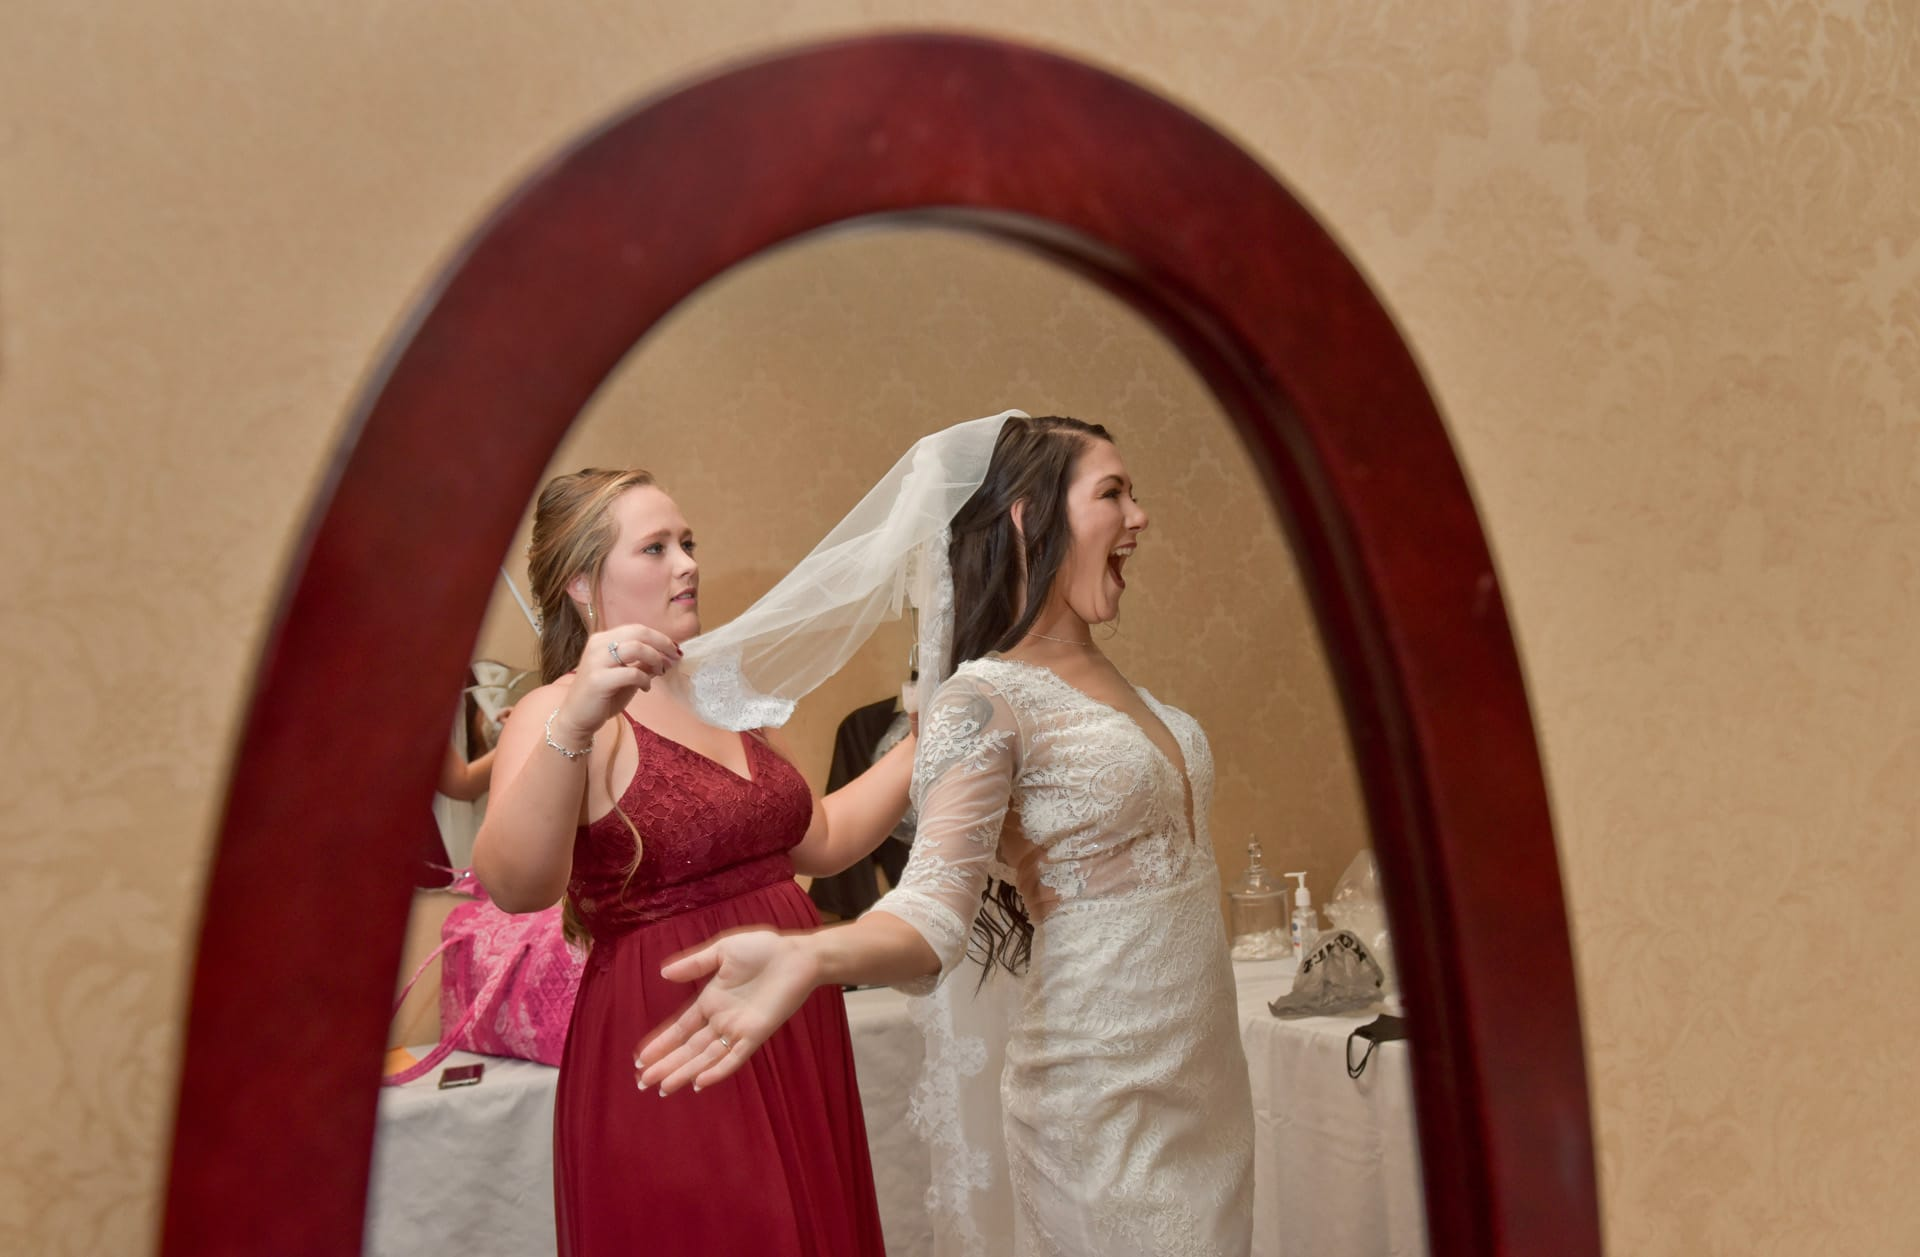 The bride sees herself for the first time in the mirror in her dress at her wedding downriver, Michigan.